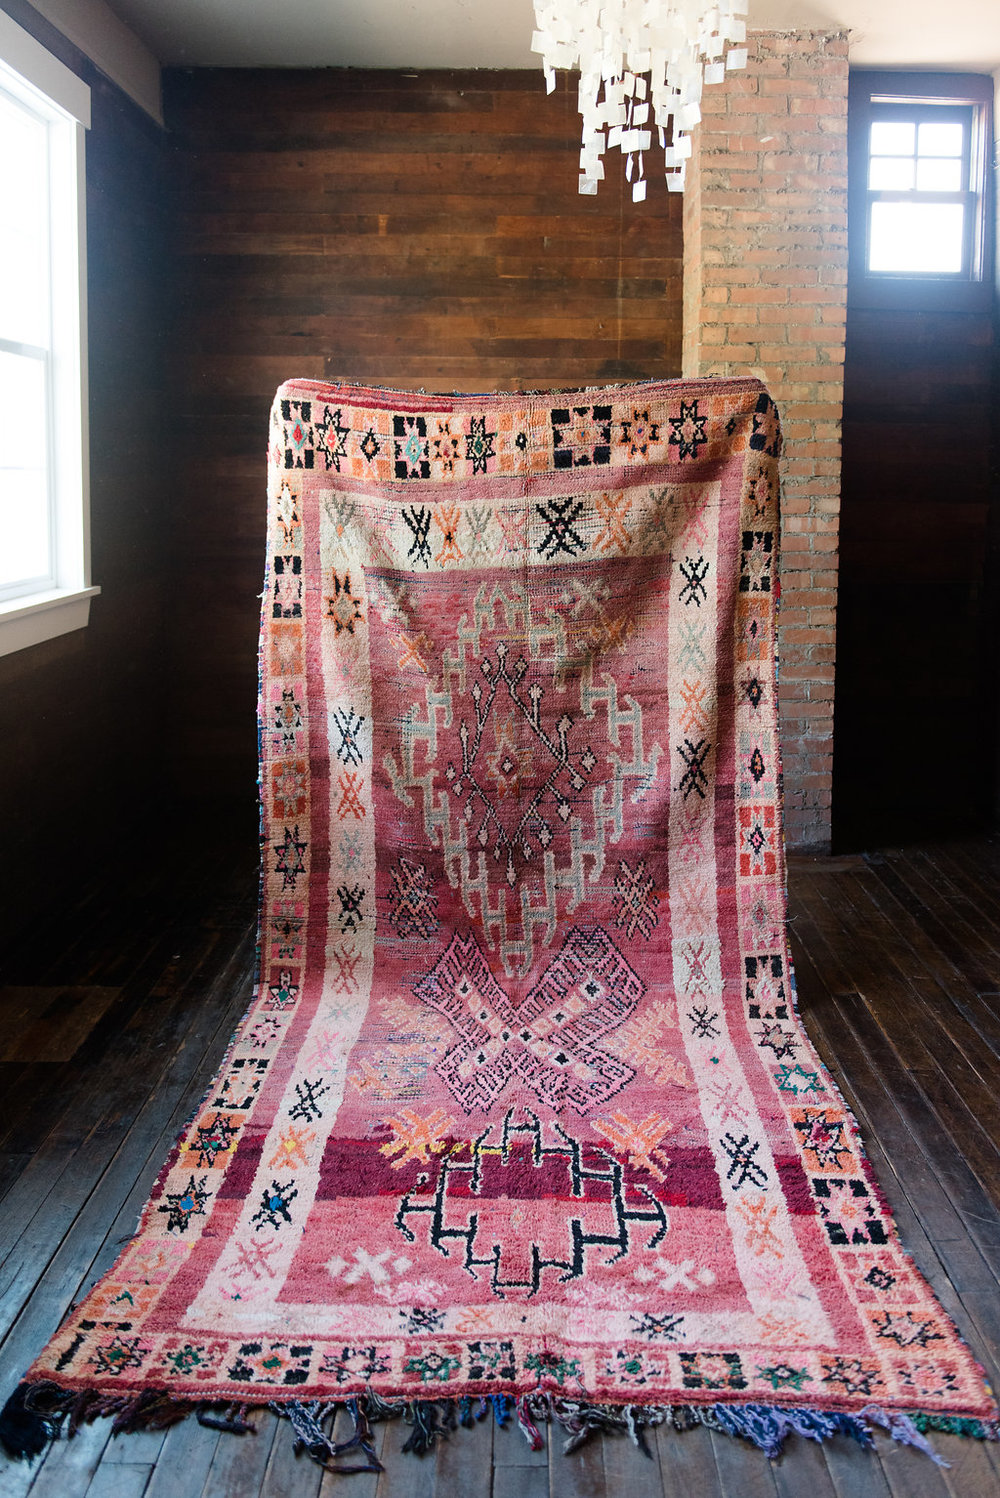 Where to buy vintage area rugs: authentic and replicas!